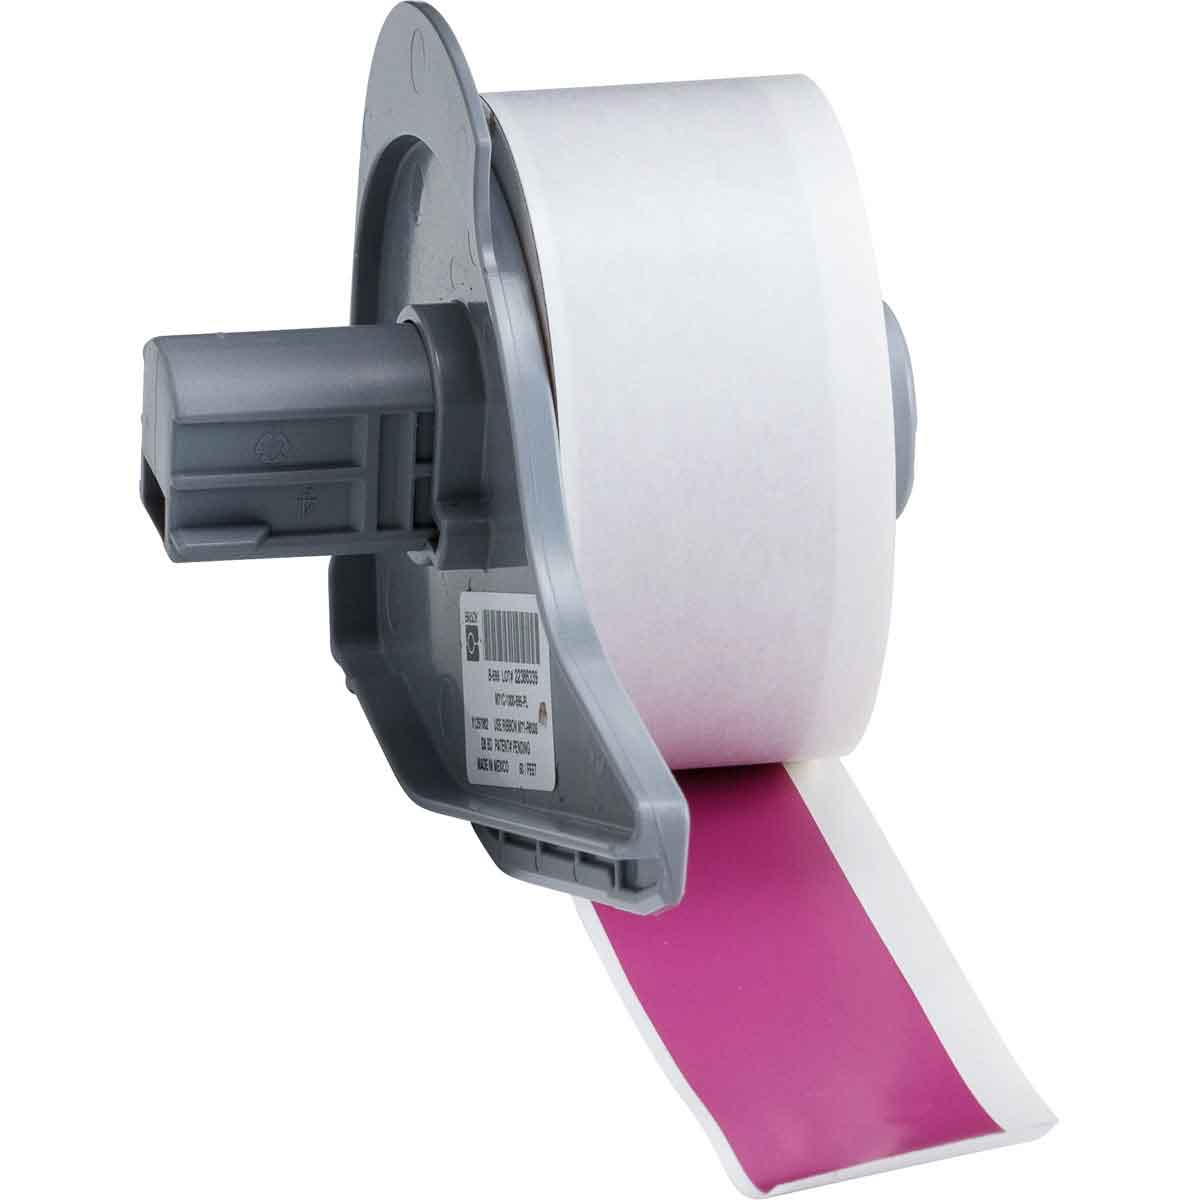 Brady® M71C-1000-595-PL Blank Thermal Transfer Tape, 50 ft L x 1 in W, Purple, B-595 Vinyl, Permanent Acrylic Adhesive, -40 to 180 deg F